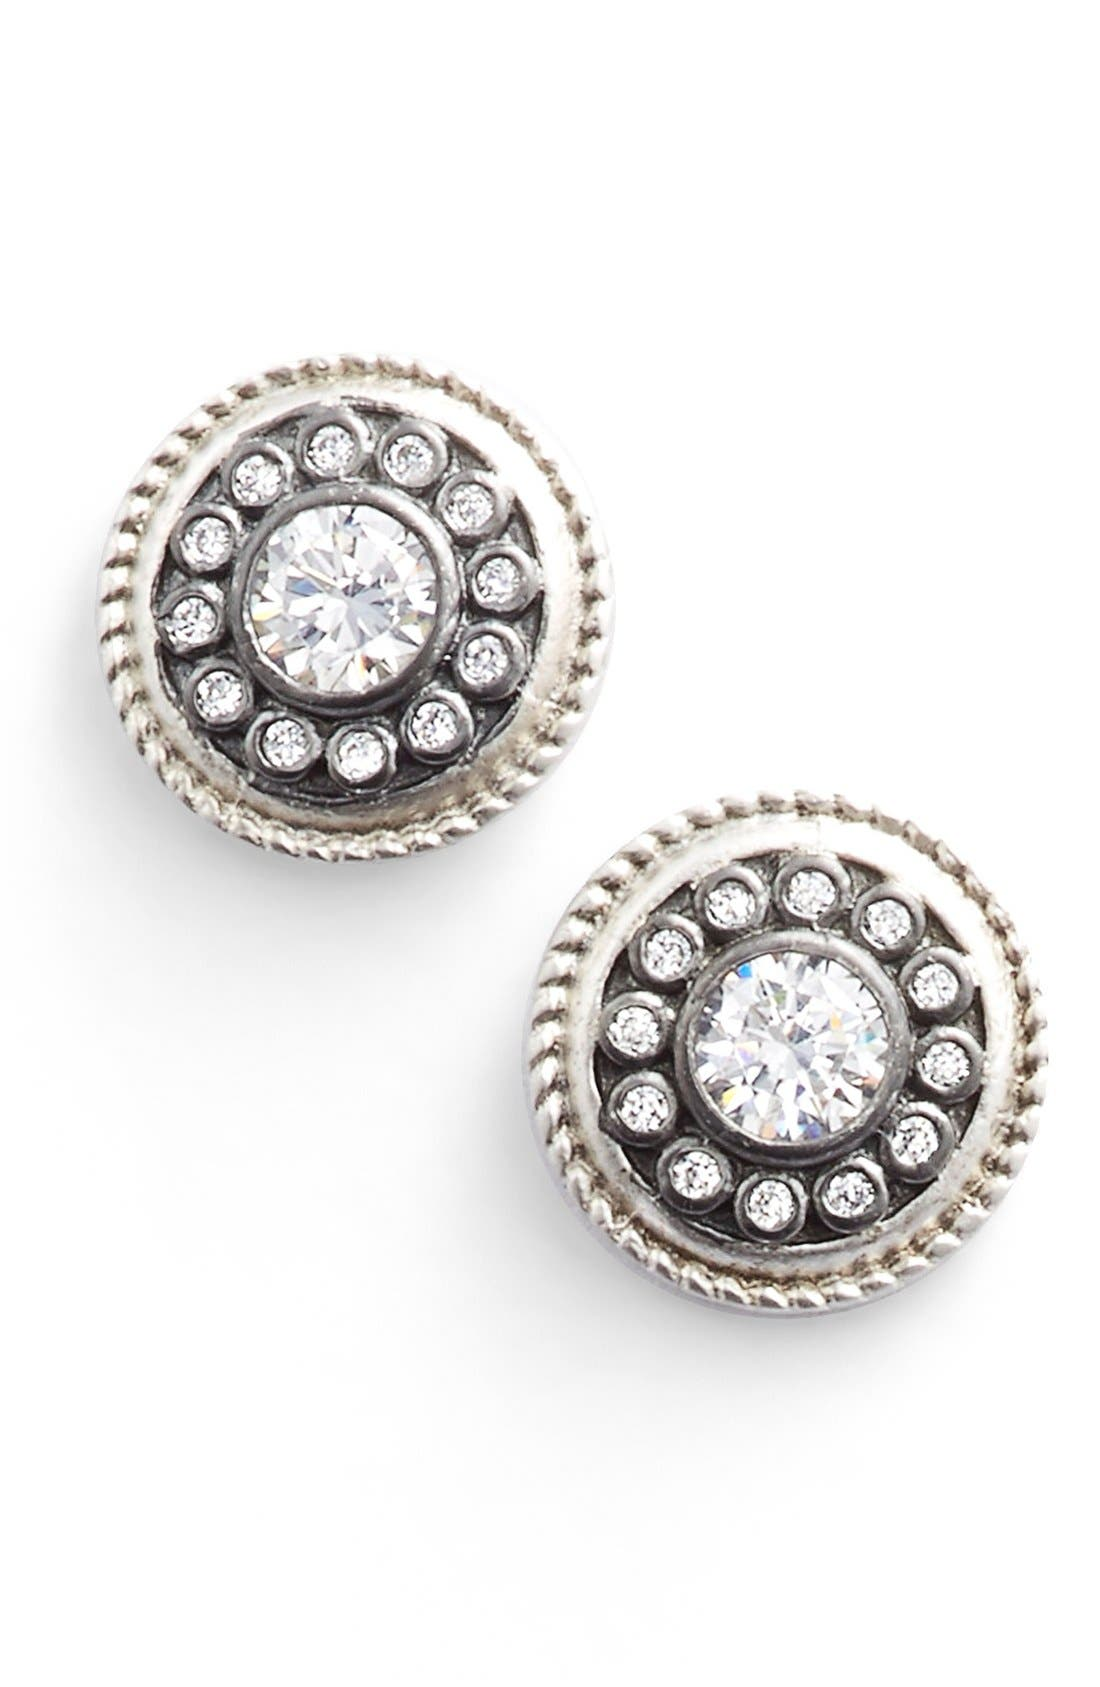 'Nautical Button' Stud Earrings,                             Main thumbnail 1, color,                             SILVER/ GUNMETAL/ CLEAR